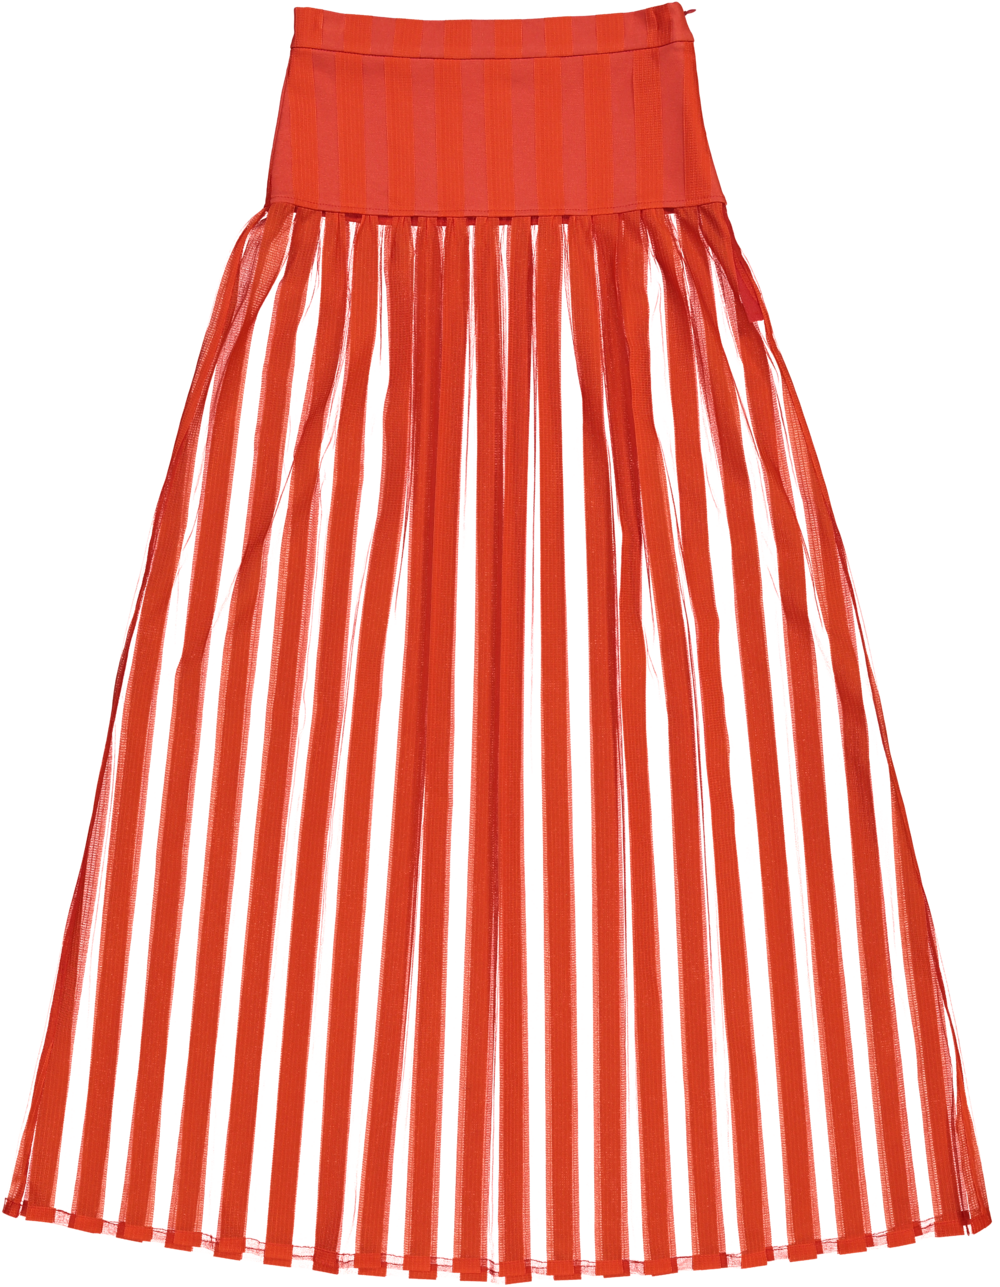 MODEL | 302  STYLE | 19 STRIPE RED  transparent/red striped long skirt